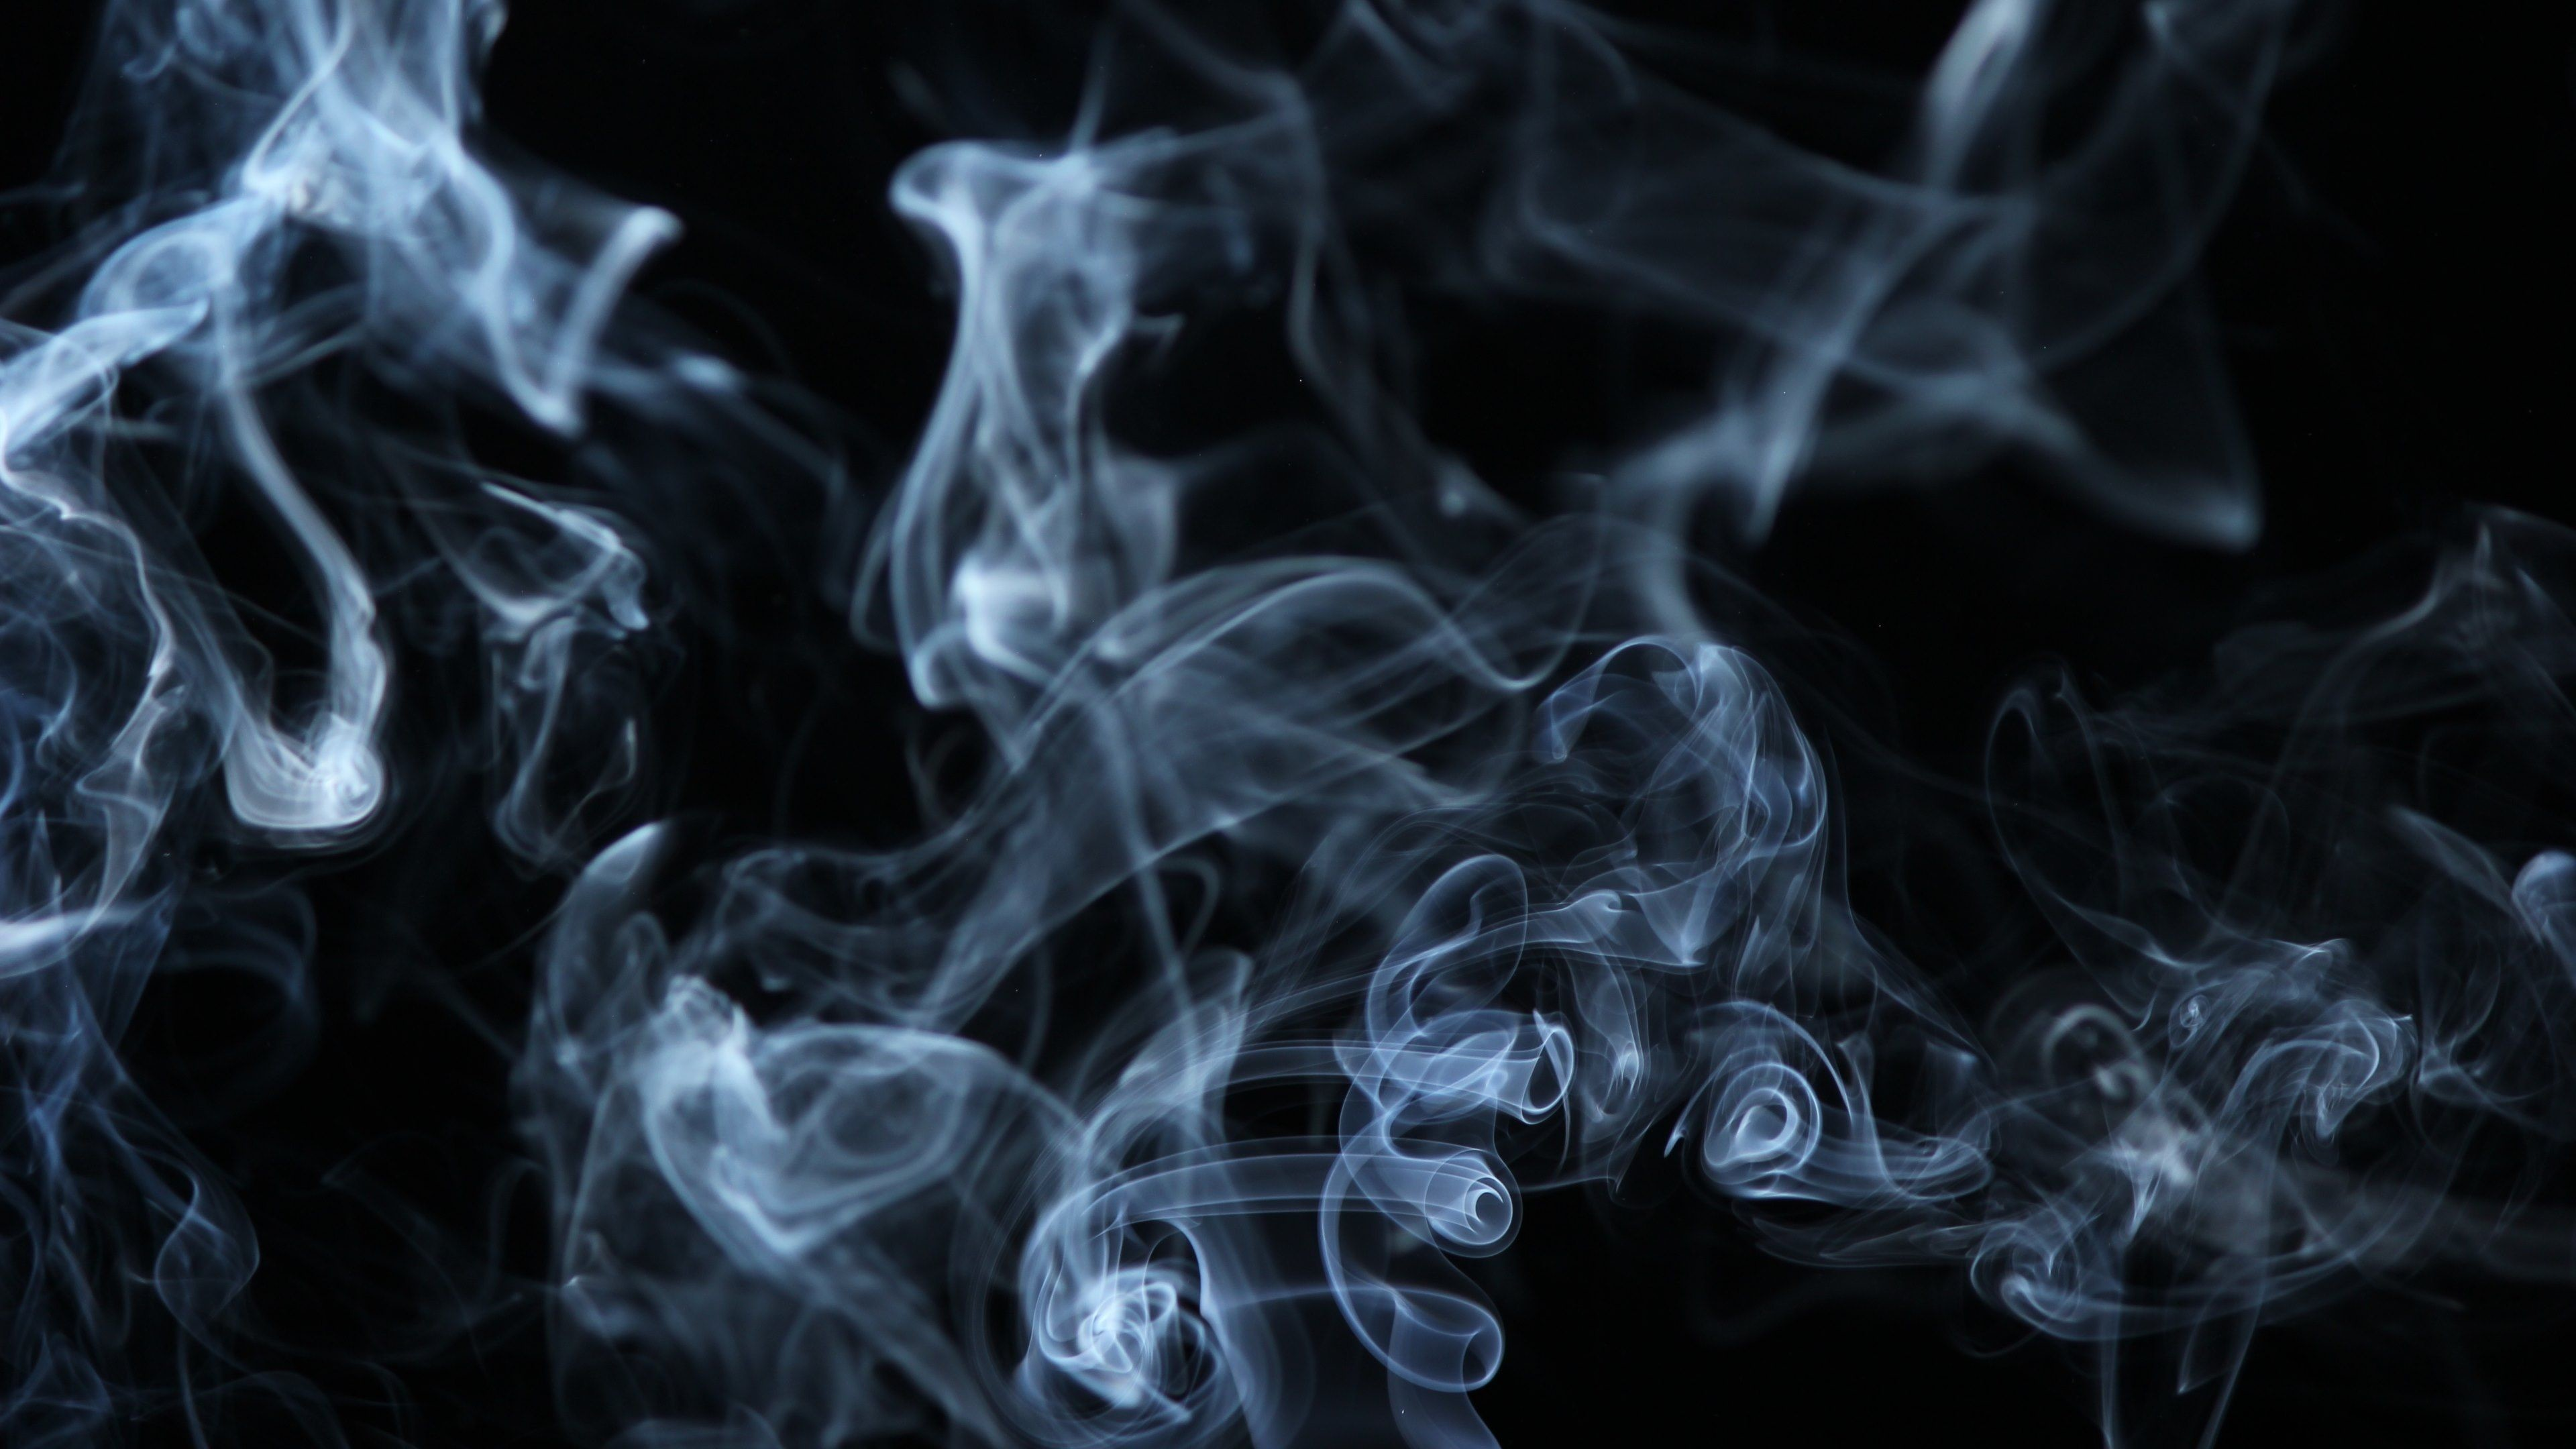 Black smoke wallpaper wallpapertag - Dark smoking wallpapers ...